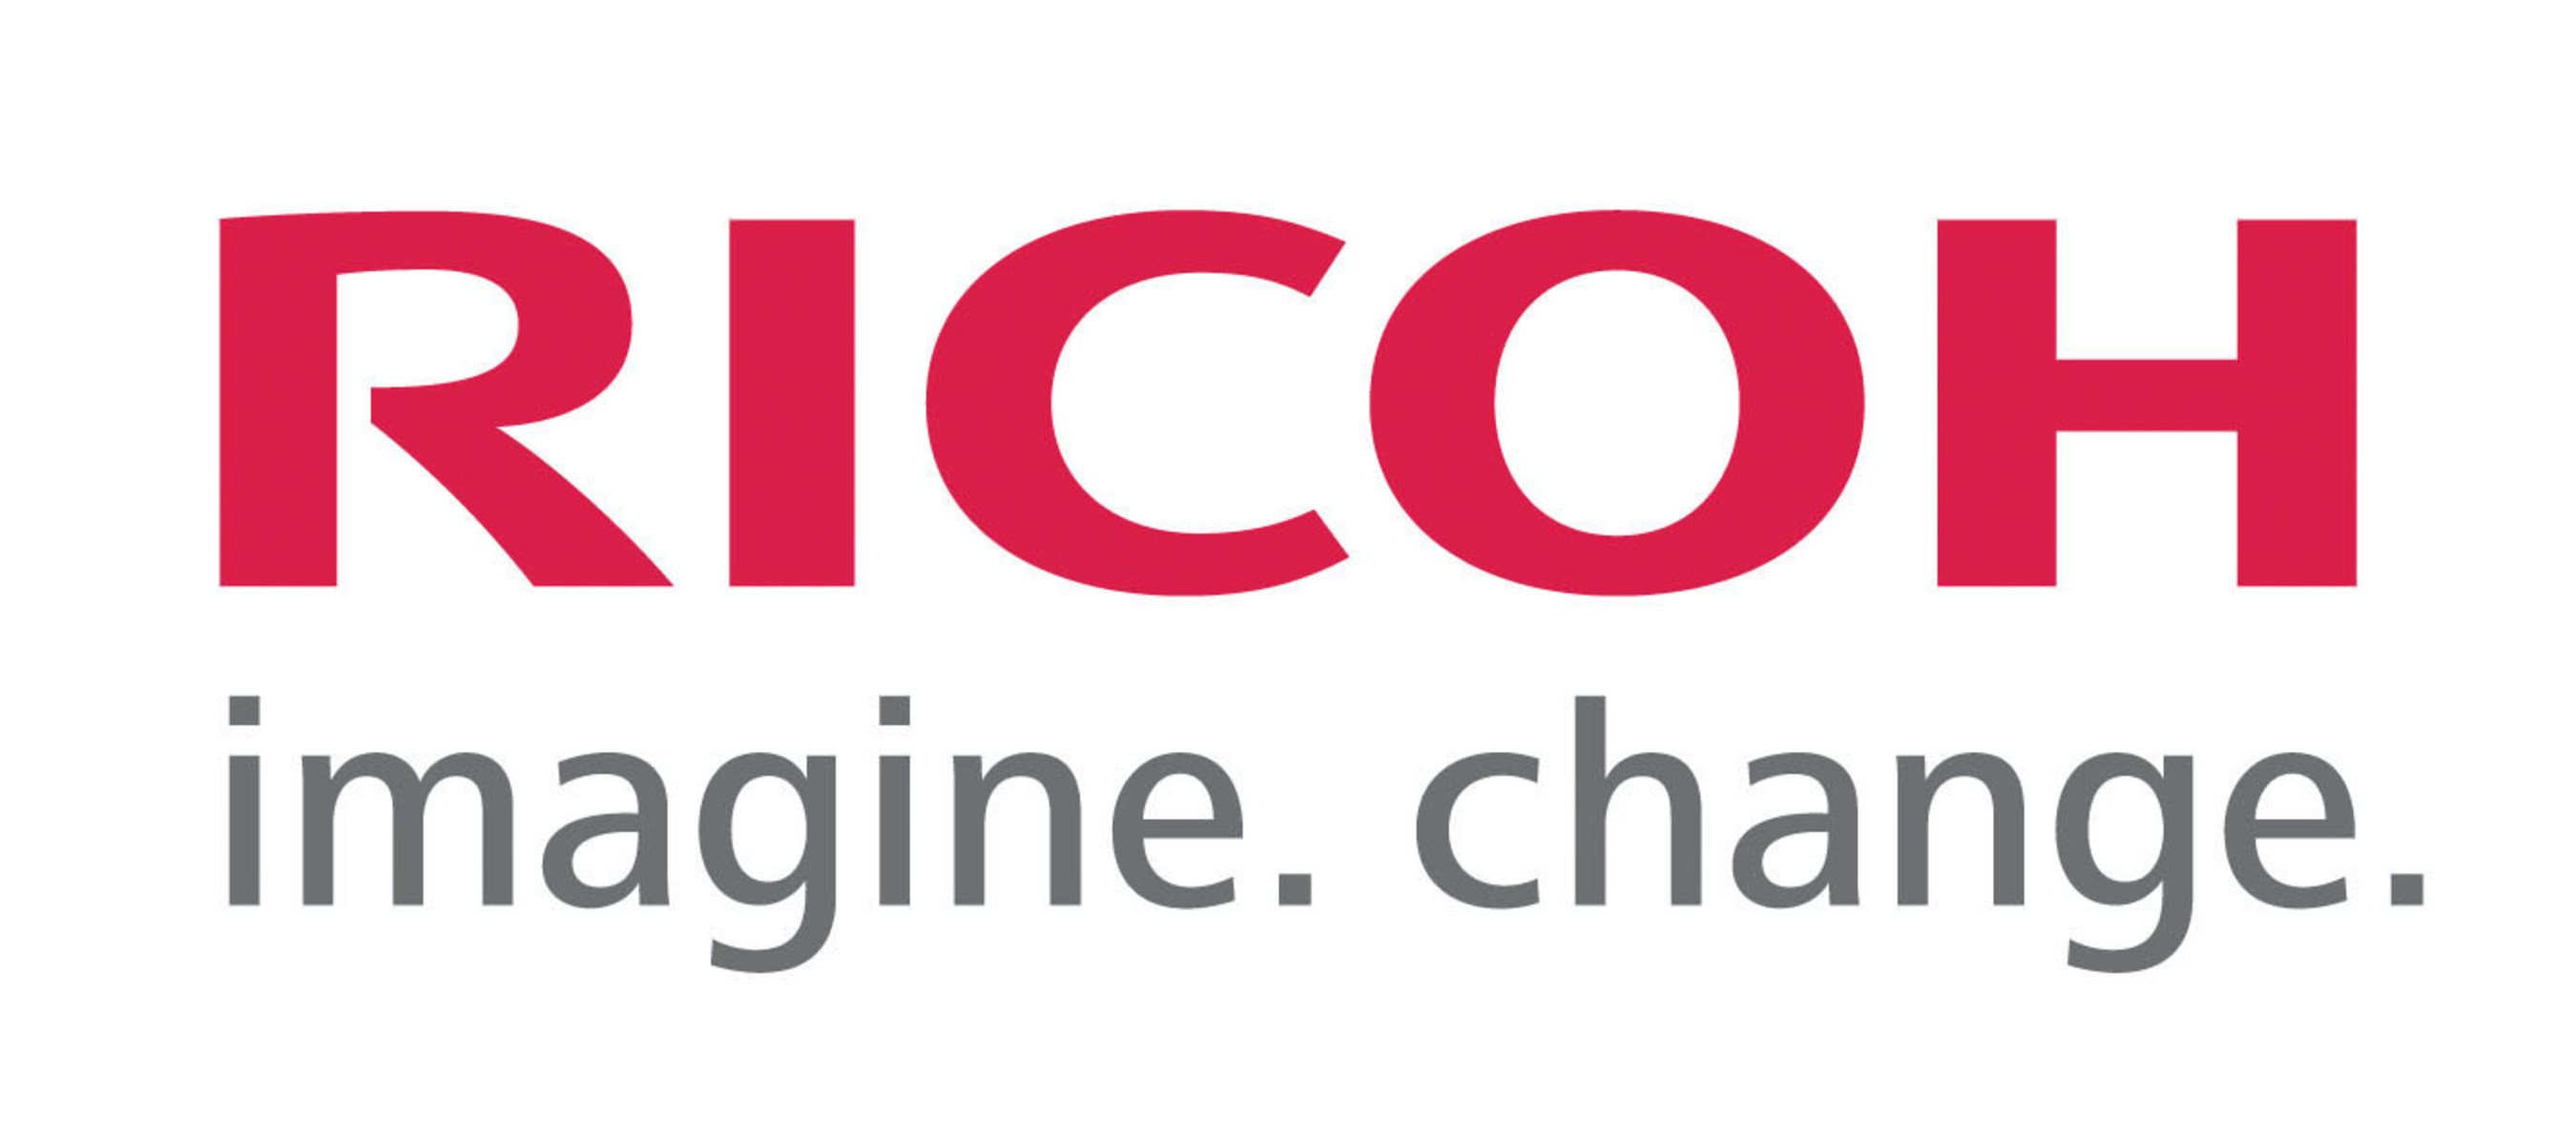 Ricoh brings innovative, new production print and communication capabilities to GRAPH EXPO 15